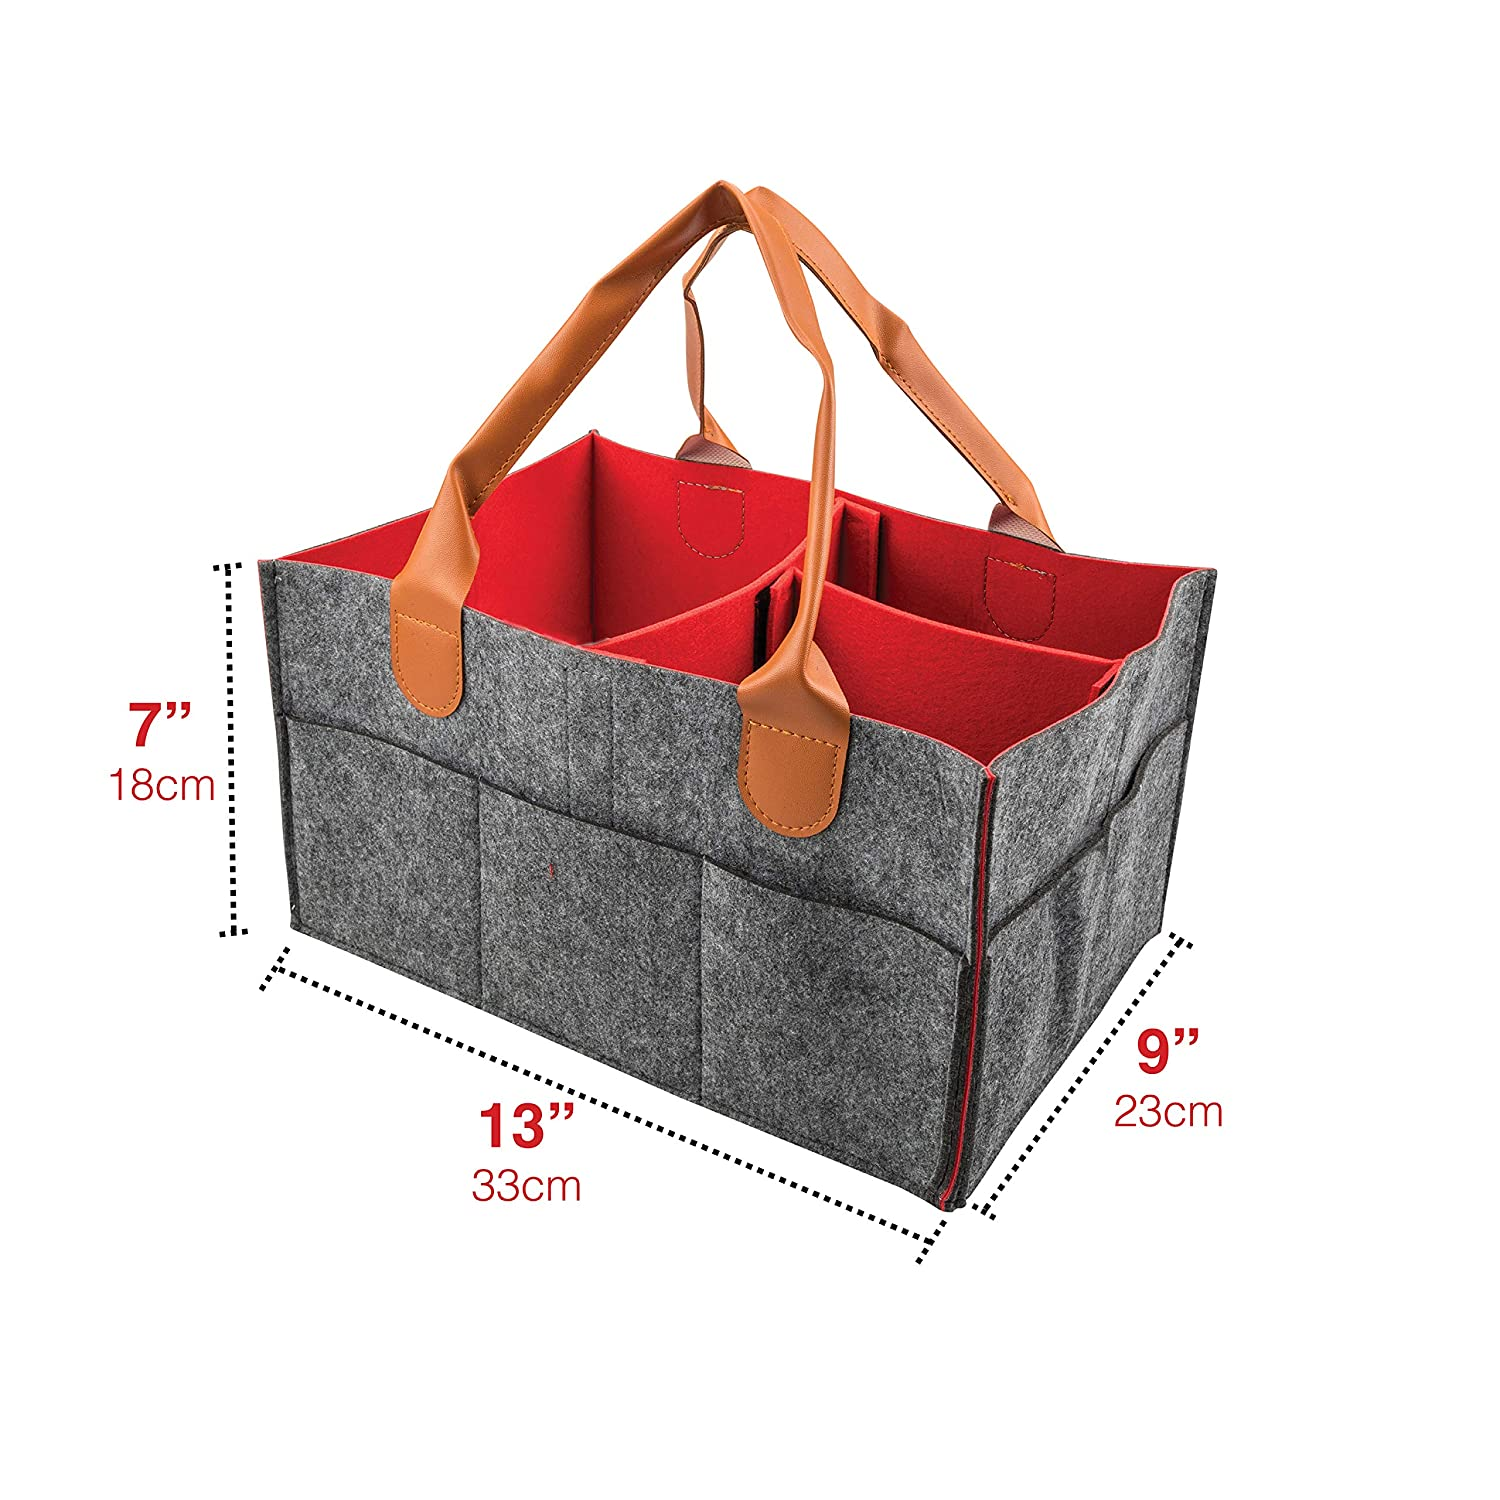 d3322148f7 ... Baby Diaper Caddy Organizer for Nursery Essentials - Baby Joey Storage  Bin for Changing Table